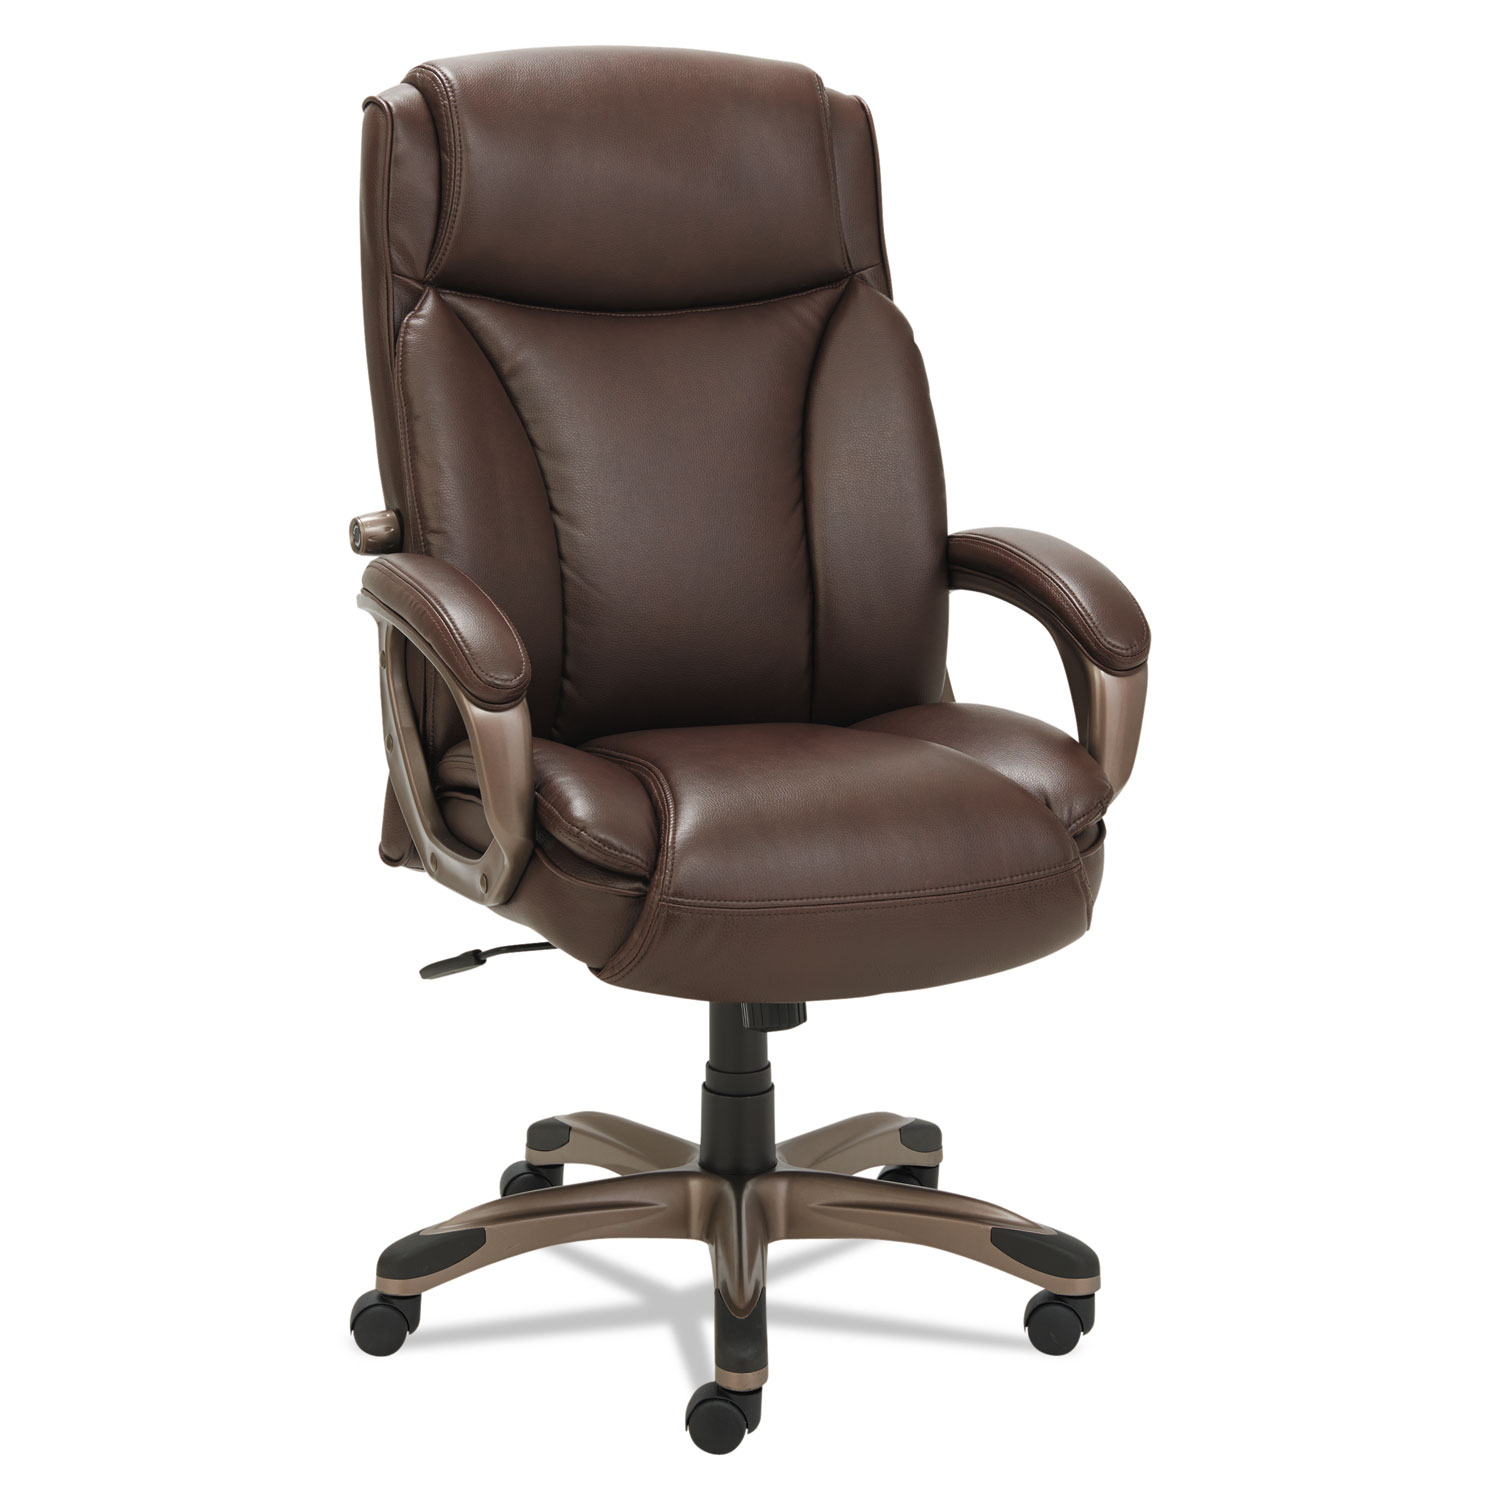 Executive Leather Chair Alera Veon Series Executive Highback Leather Chair Coil Spring Cushioning Brown